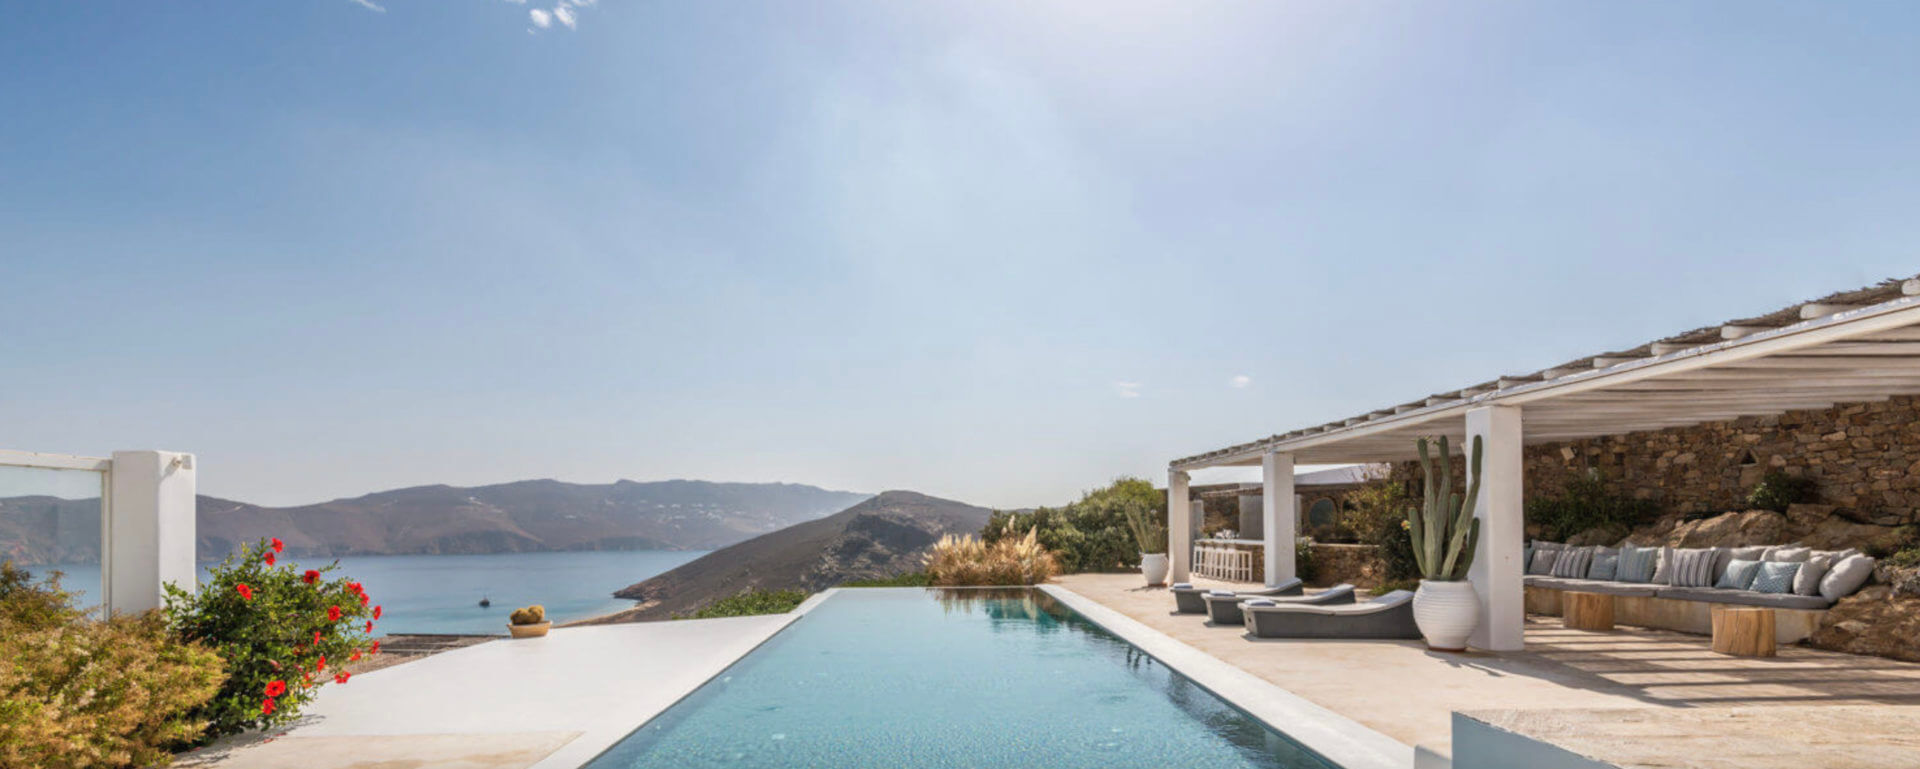 Experiencing Greece at its Best with Bespokers